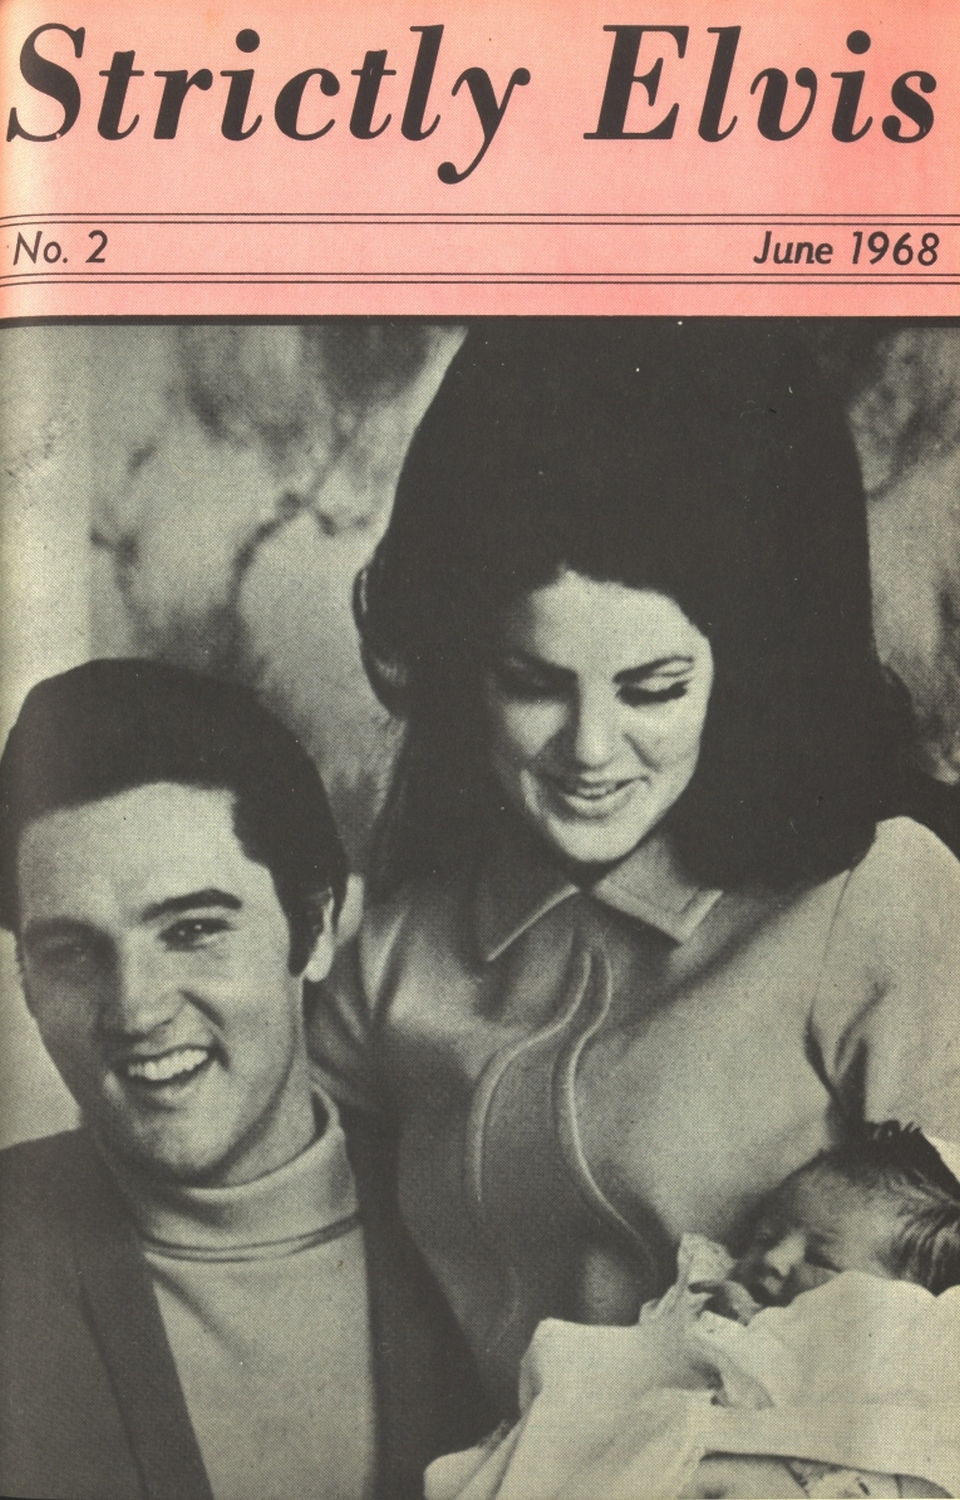 Strictly Elvis No. 2 June 1968 01